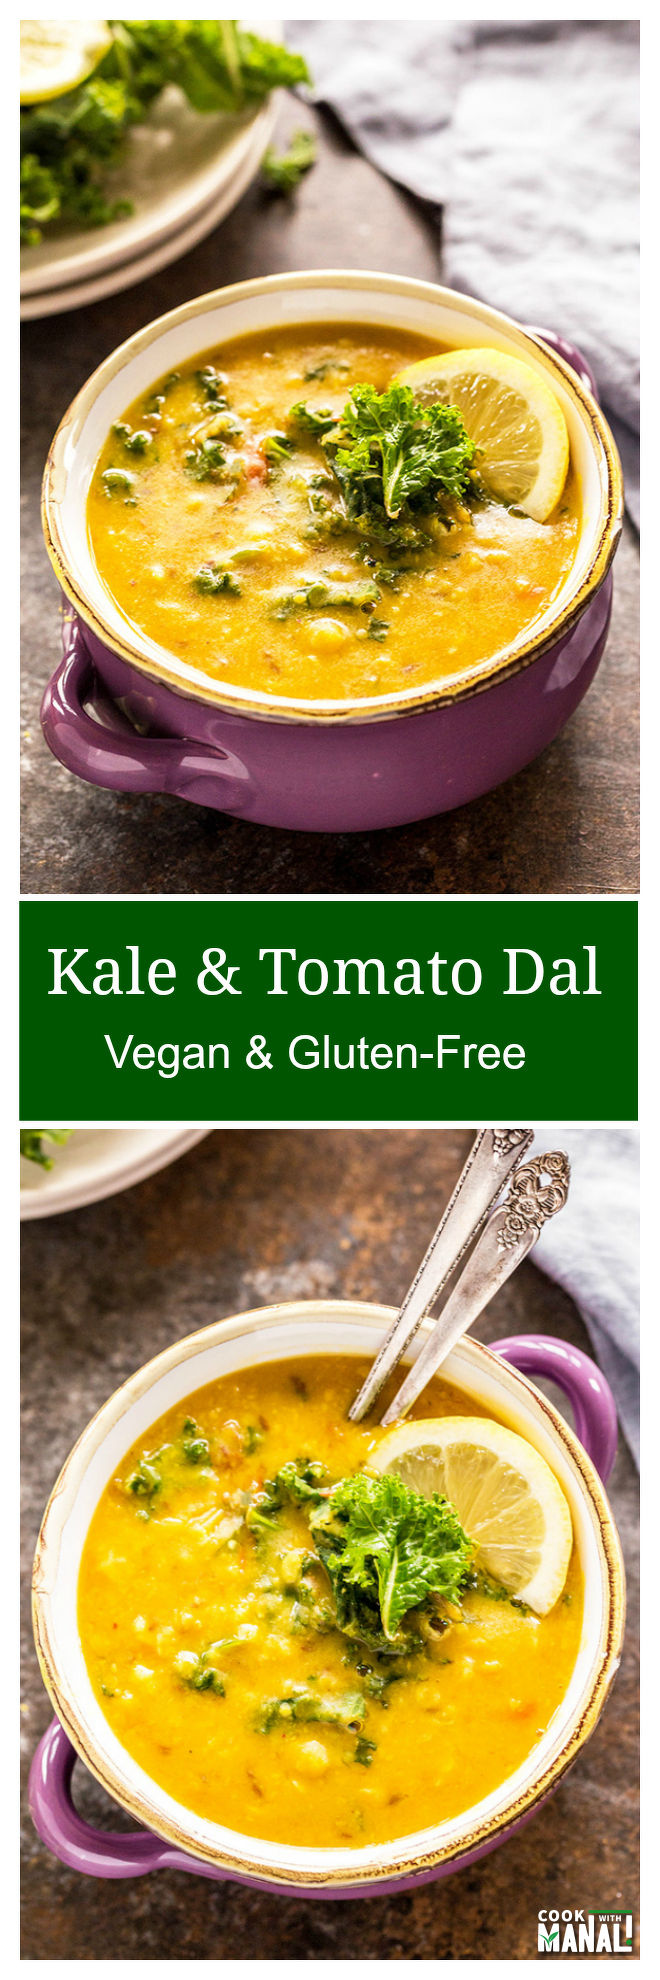 KALE TOMATO DAL COOK WITH MANALI